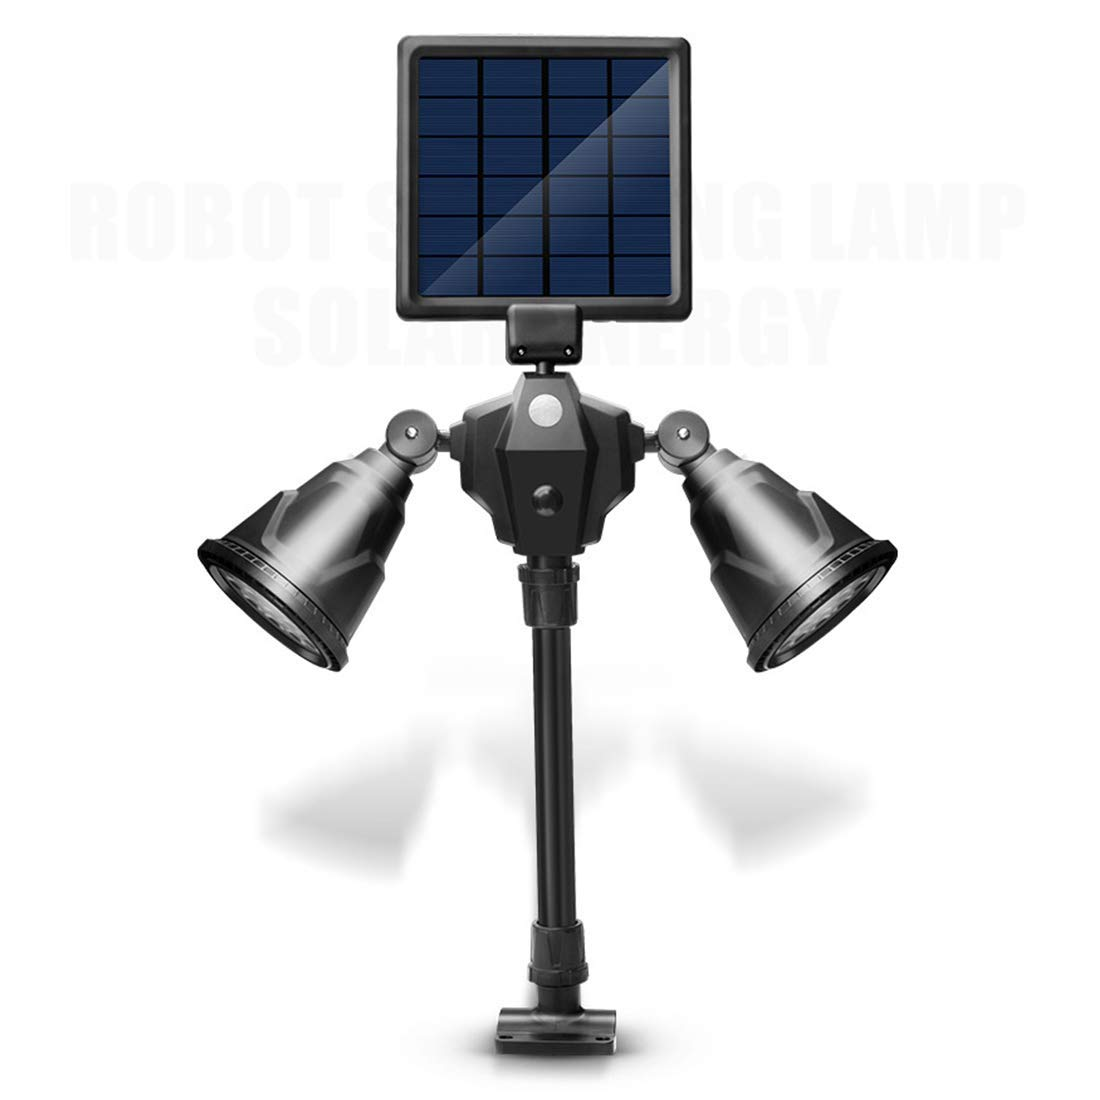 Sububblepper Solar Lights Outdoor, 36 LEDs Waterproof Solar Spotlight Adjustable Wall Light 4 Modes Security Lights for Patio, Deck, Yard, Garden (Color : Cold White)